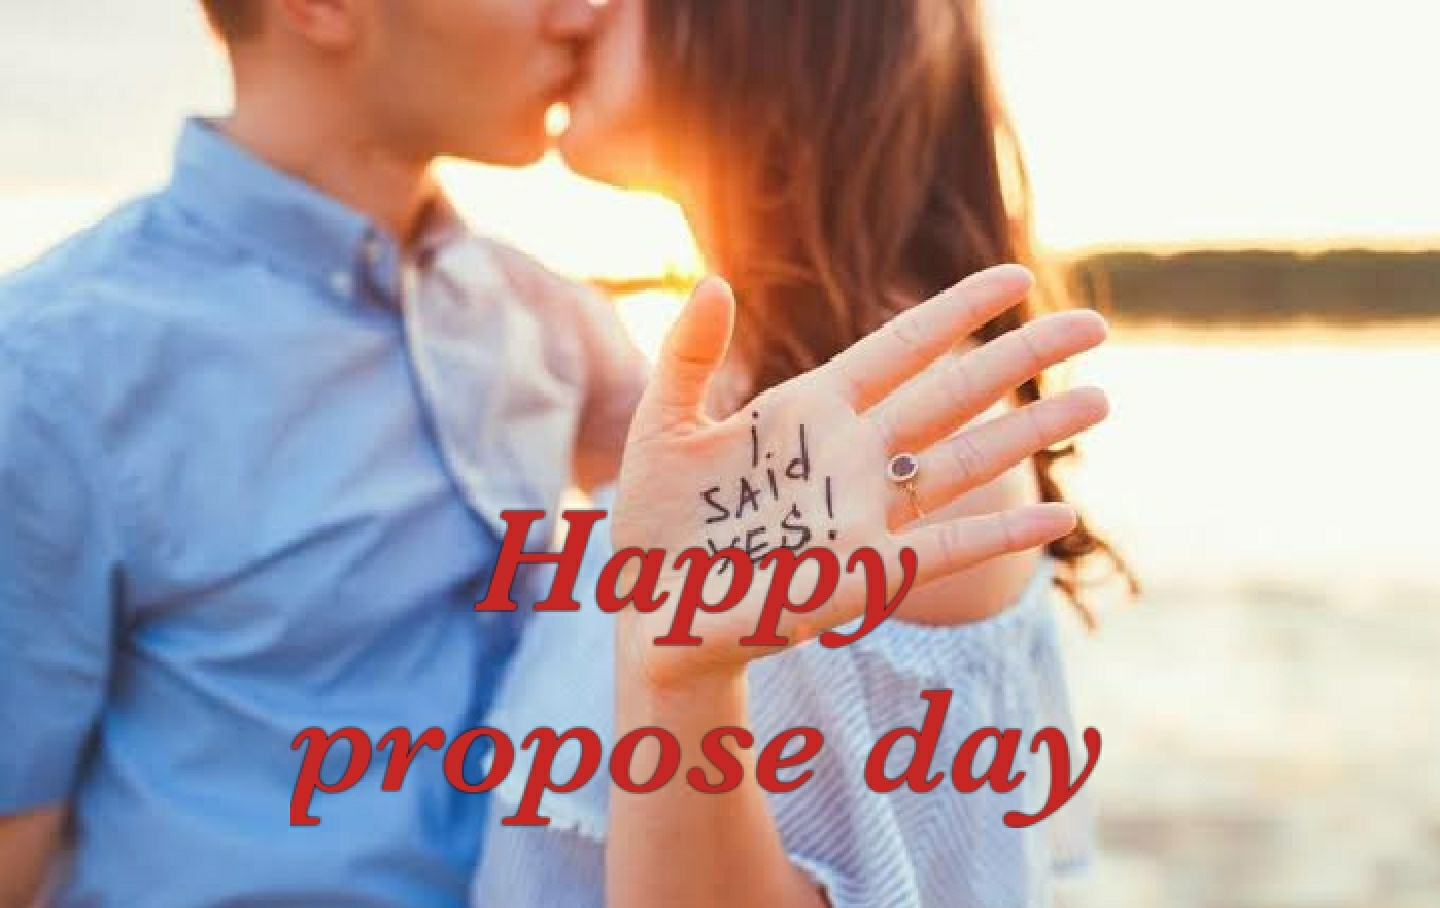 Happy Propose day i said yes best proposal image for you dear boyfriend